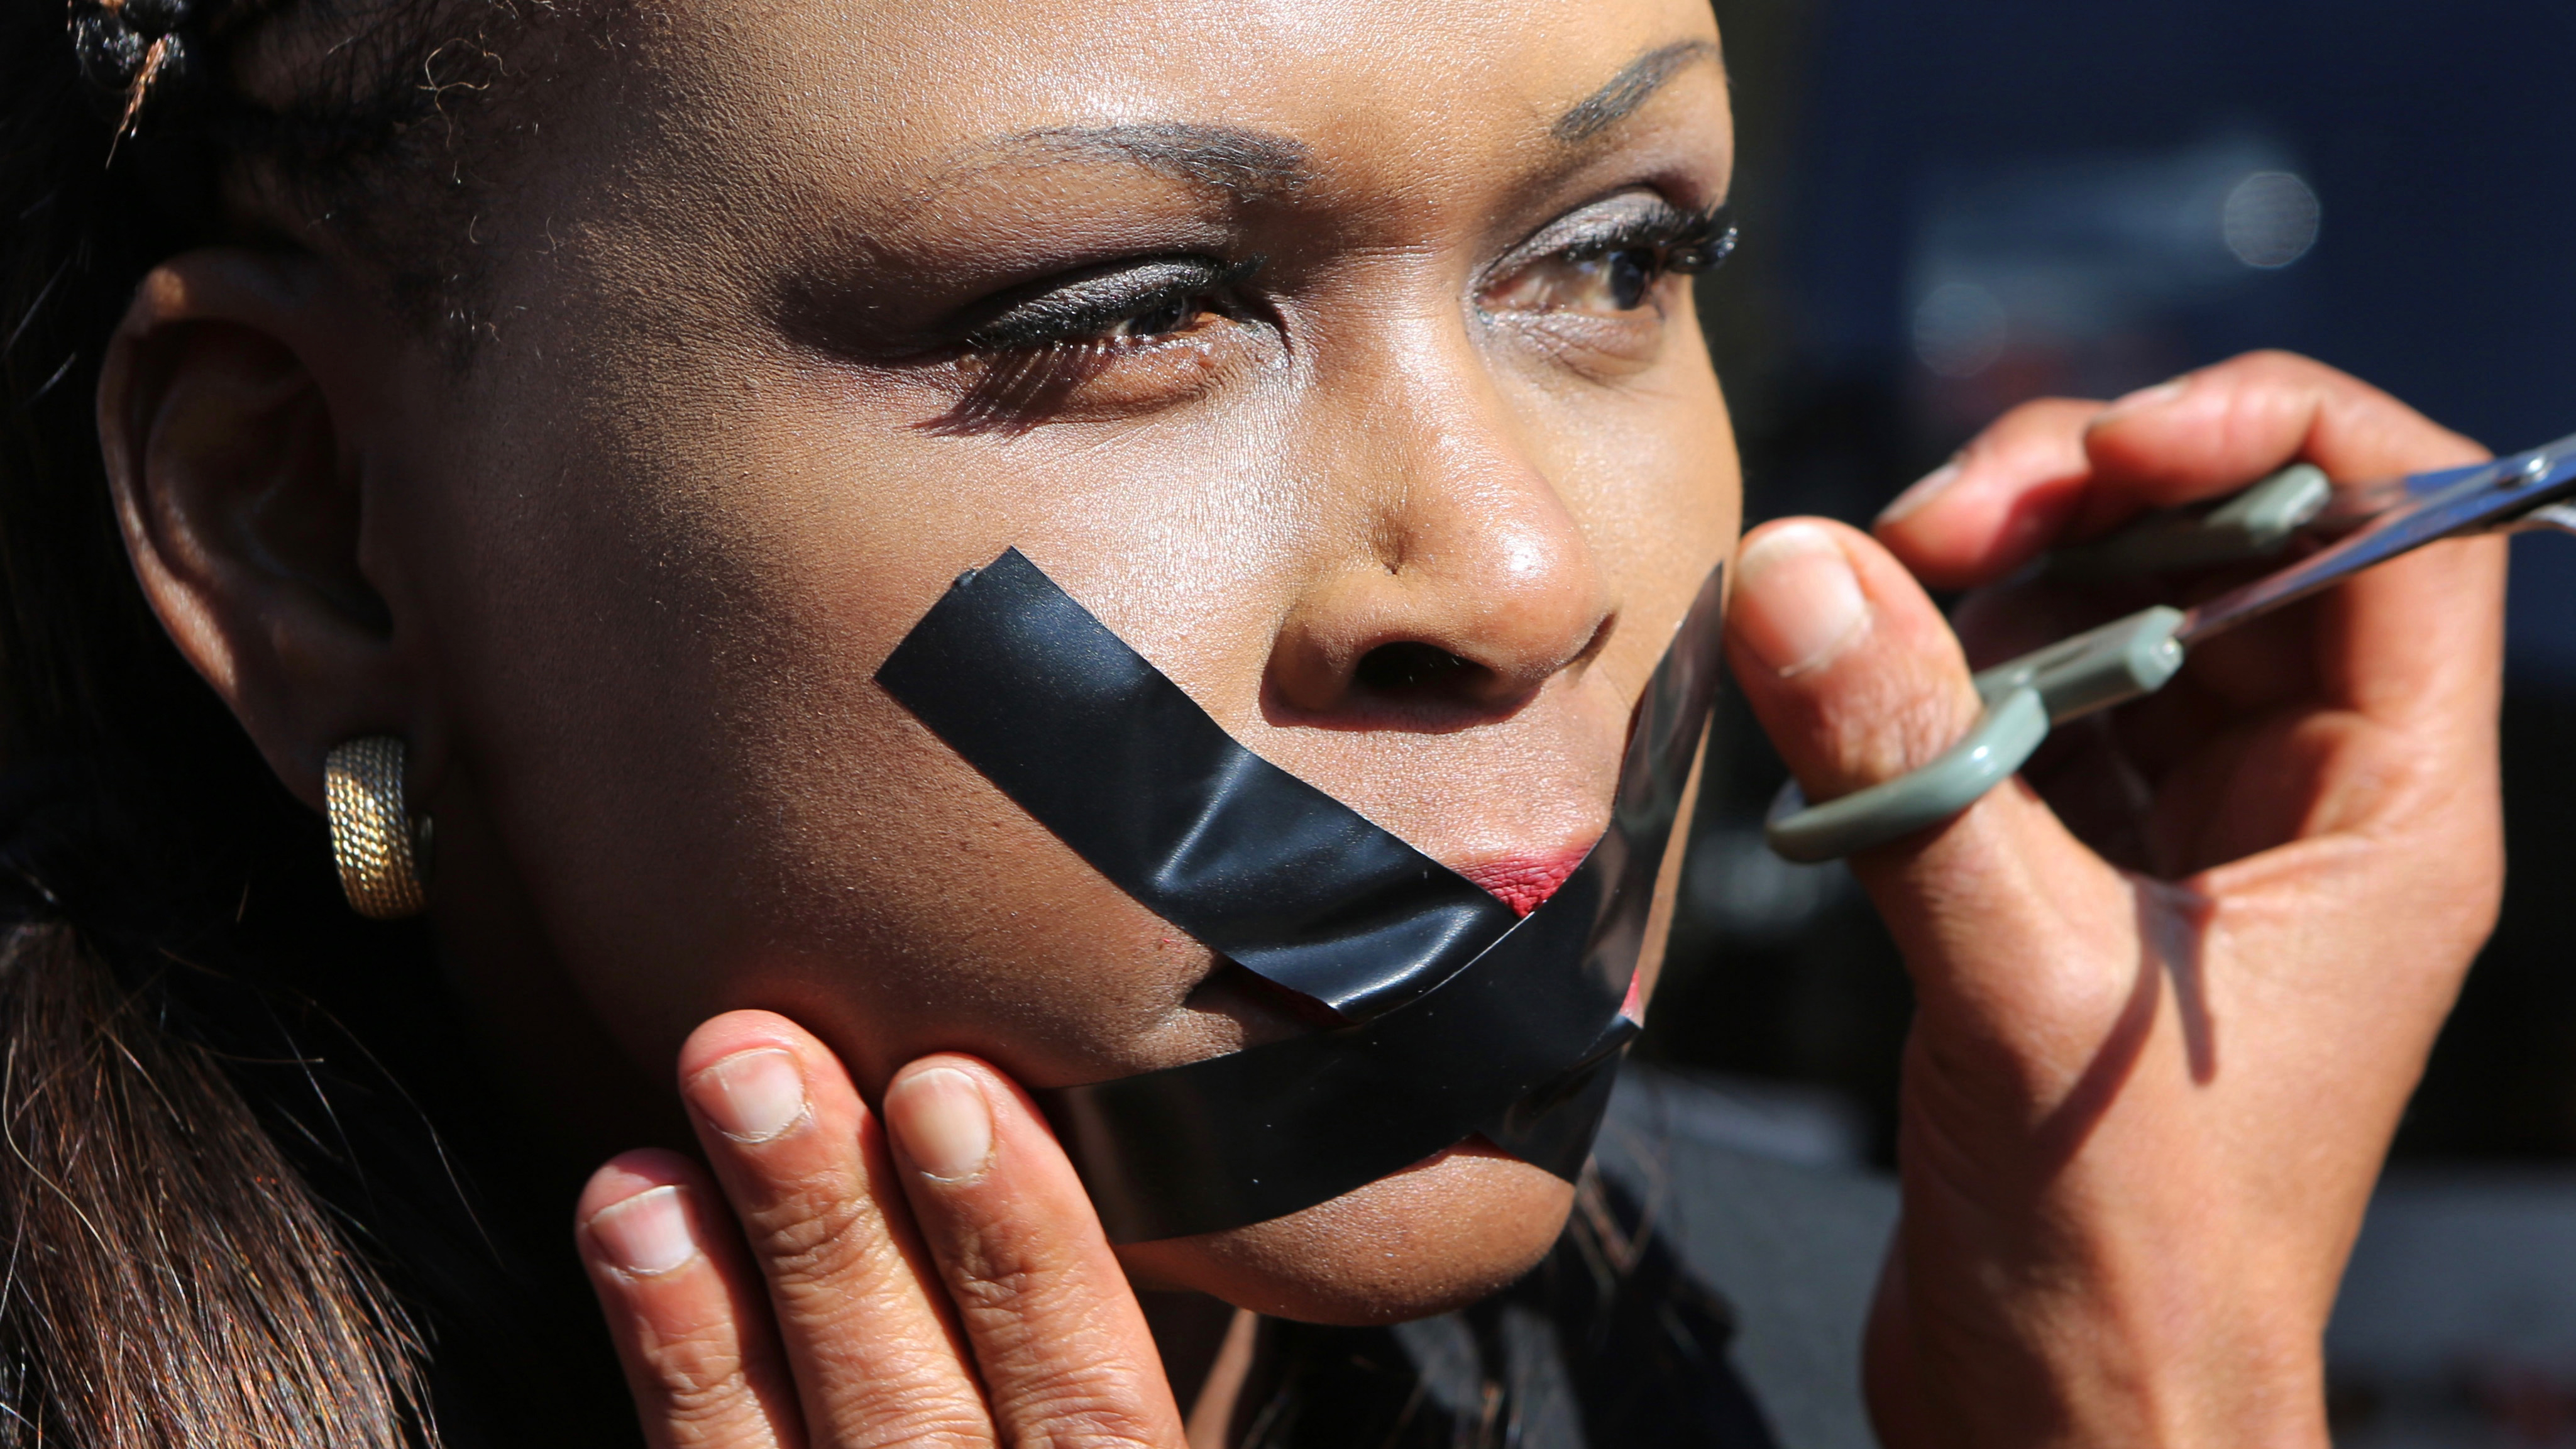 A protester has her lips taped in Johannesburg, Friday July 1, 2016, as journalists and members of the public demonstrate outside the South African Broadcasting Corporation (SABC) headquarters in solidarity with three SABC  journalists who were suspended for expressing their concerns about editorial policy amid allegations of newsroom censorship. (AP Photo/Denis Farrell).